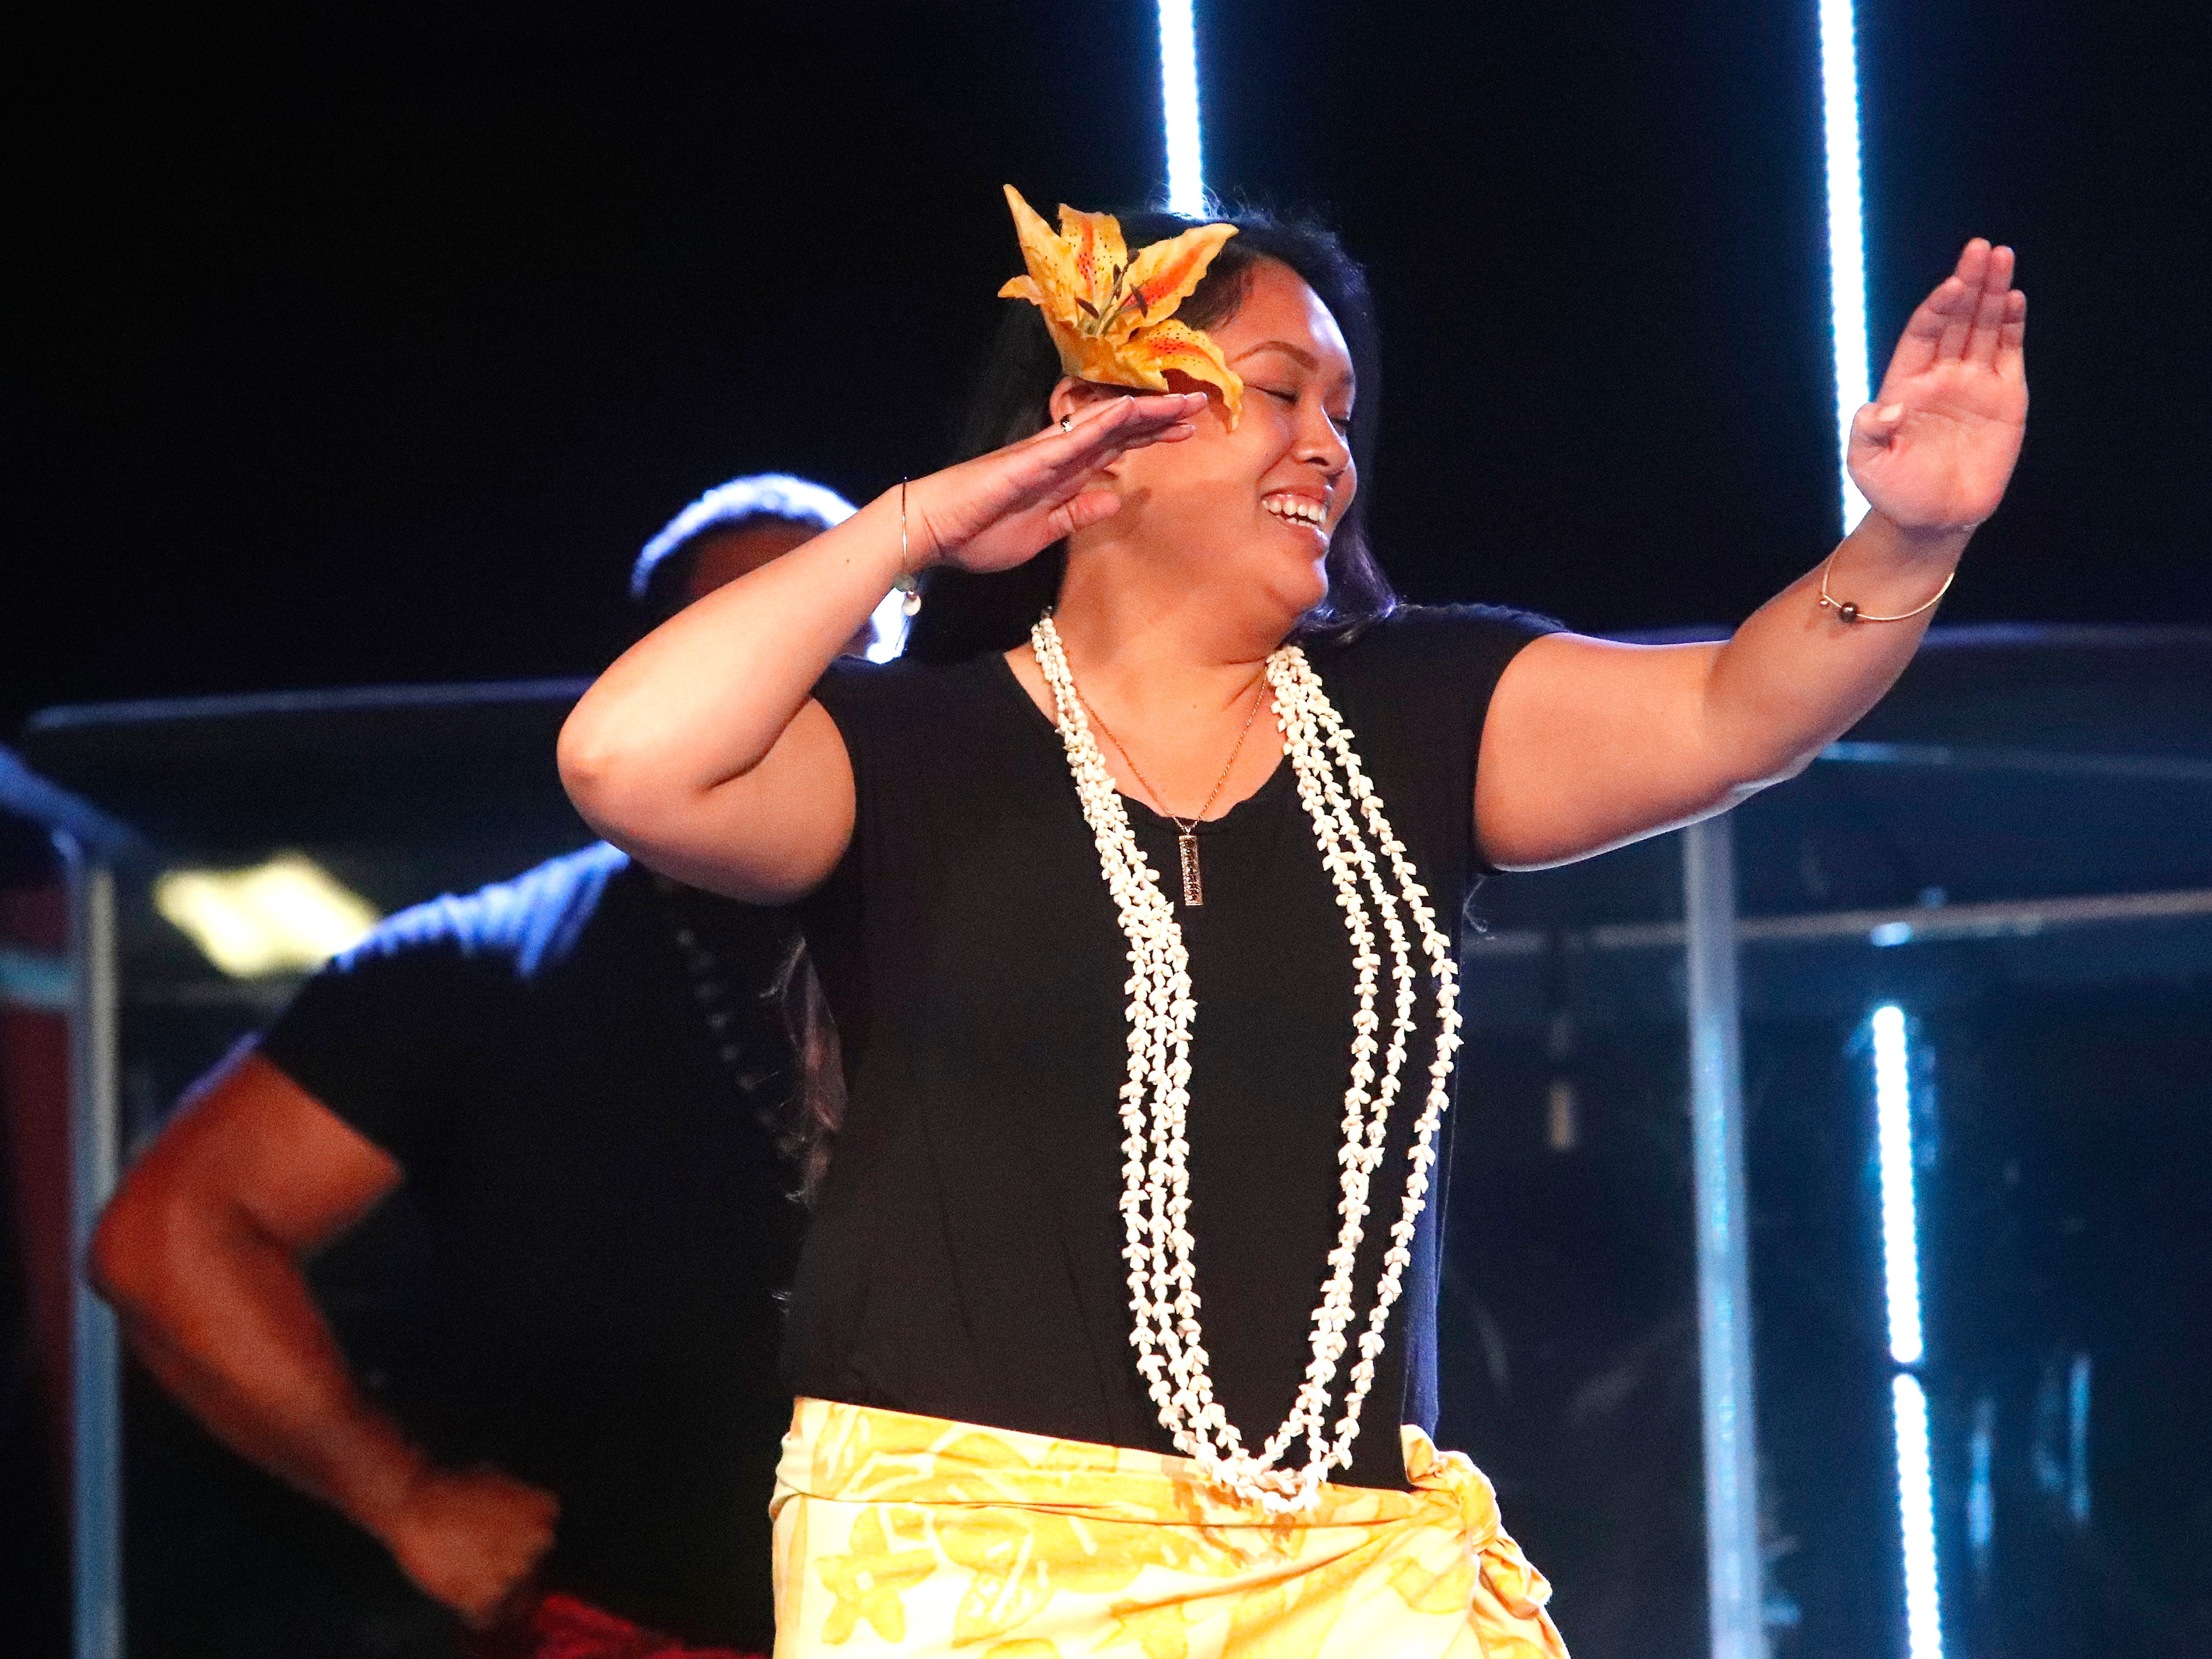 International students from Bethel Church's School of Supernatural Ministry present the Concert of the Nations on Thursday, March 14, 2019, in Redding. Pictured is Daralynne Liliuokalani Fumar (Pacific Islands).